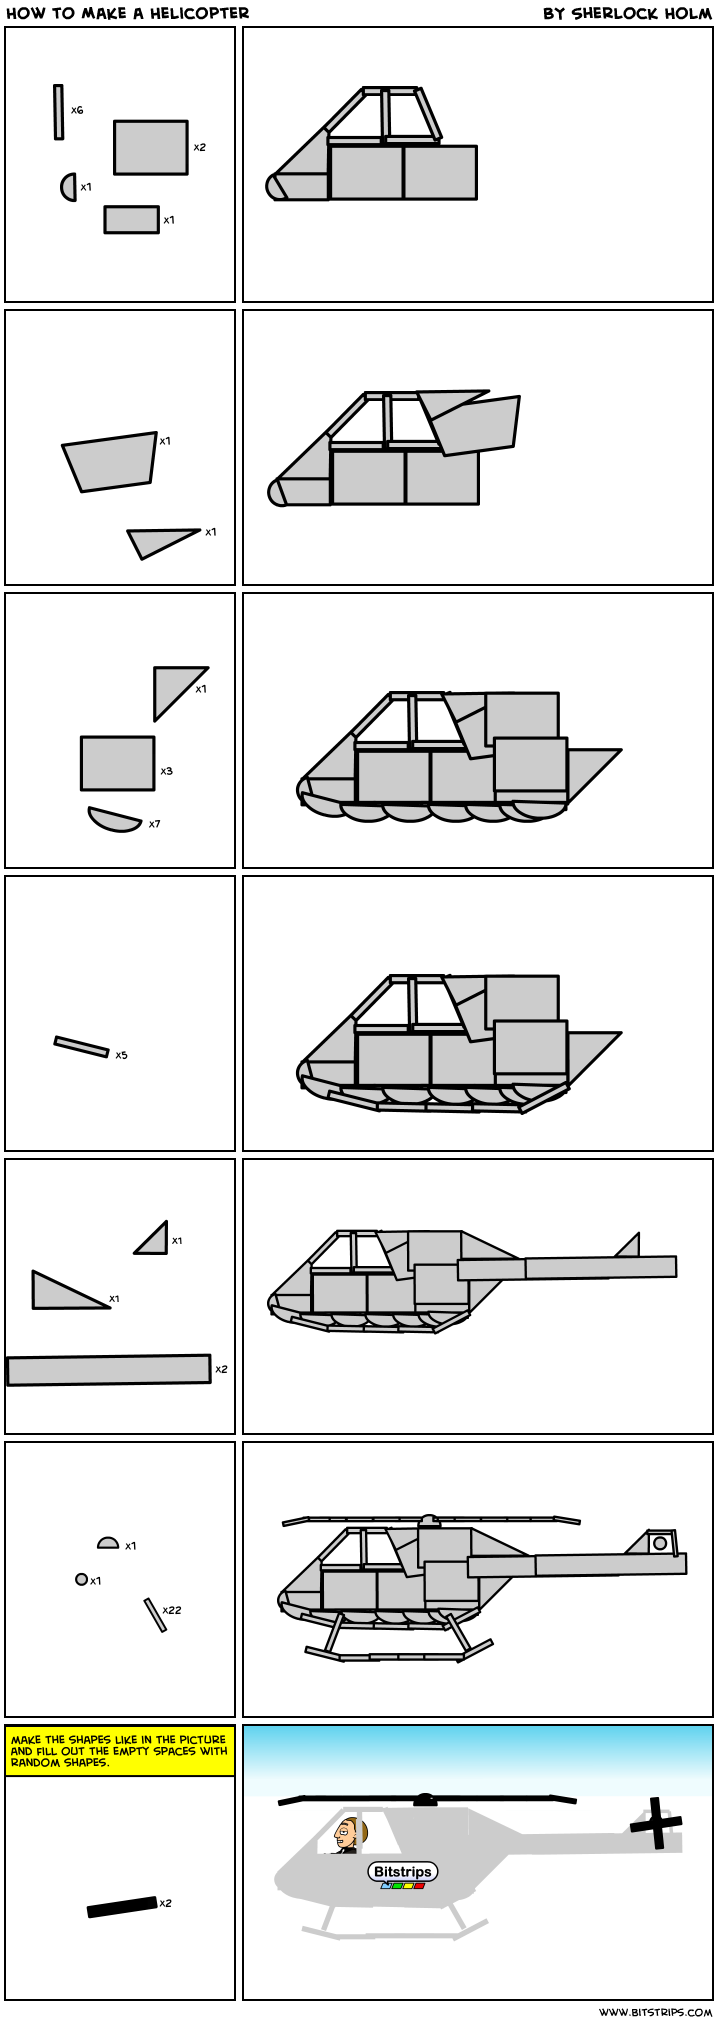 How to Make a Helicopter